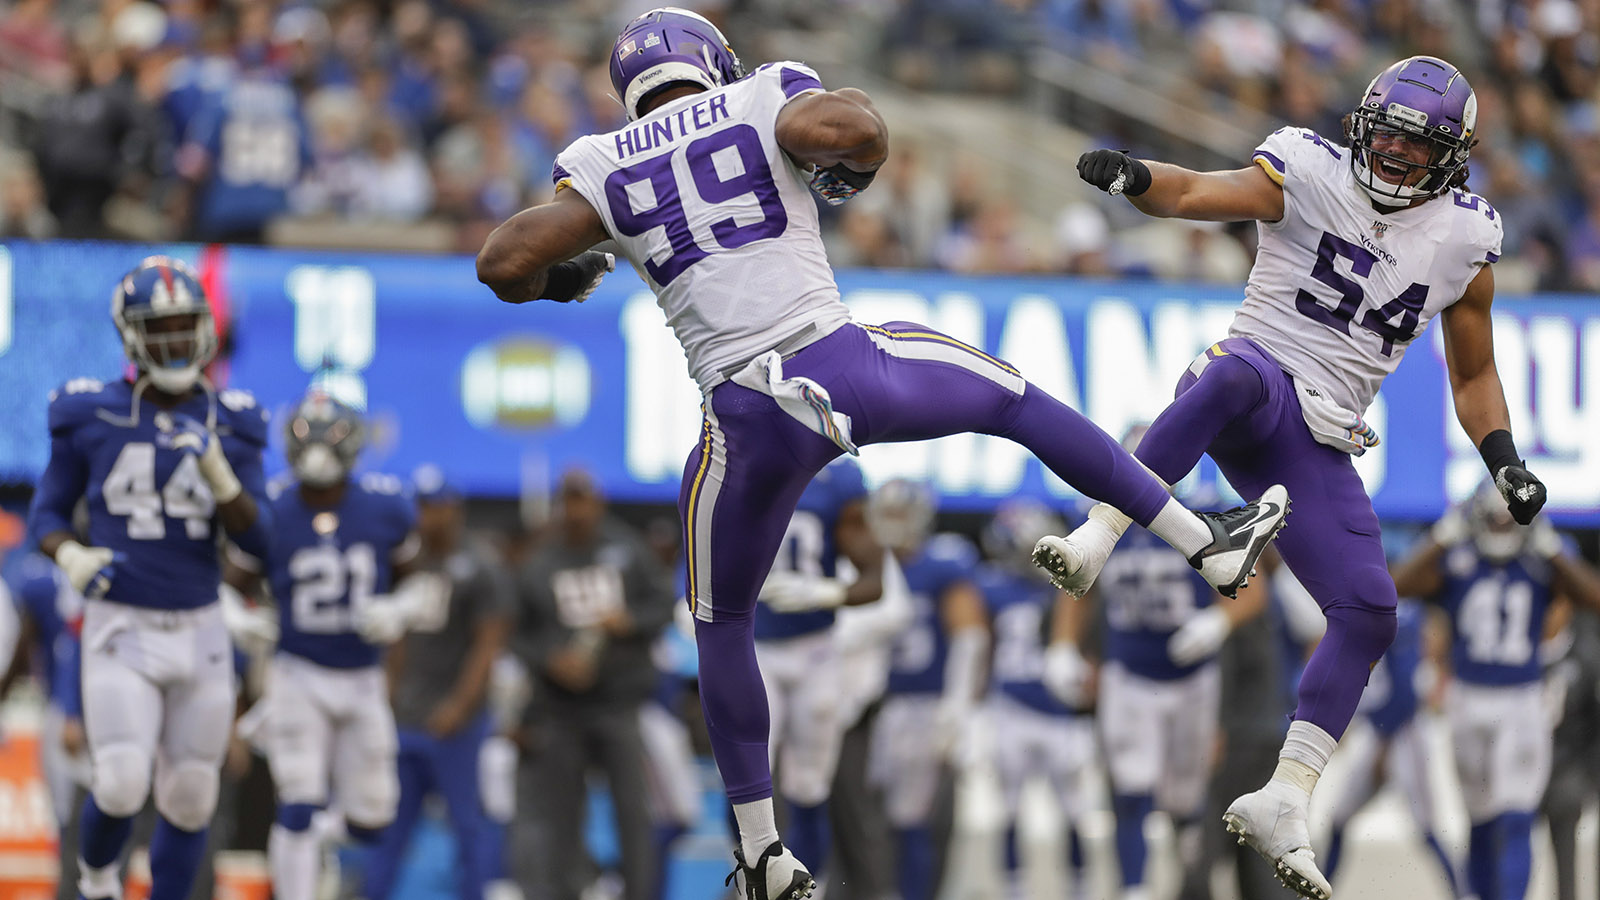 Minnesota Vikings middle linebacker Eric Kendricks (54) and defensive end Danielle Hunter (99) celebrate after a defensive play against the New York Giants during the third quarter of an NFL football game, Sunday, Oct. 6, 2019, in East Rutherford, N.J. (AP Photo/Adam Hunger)